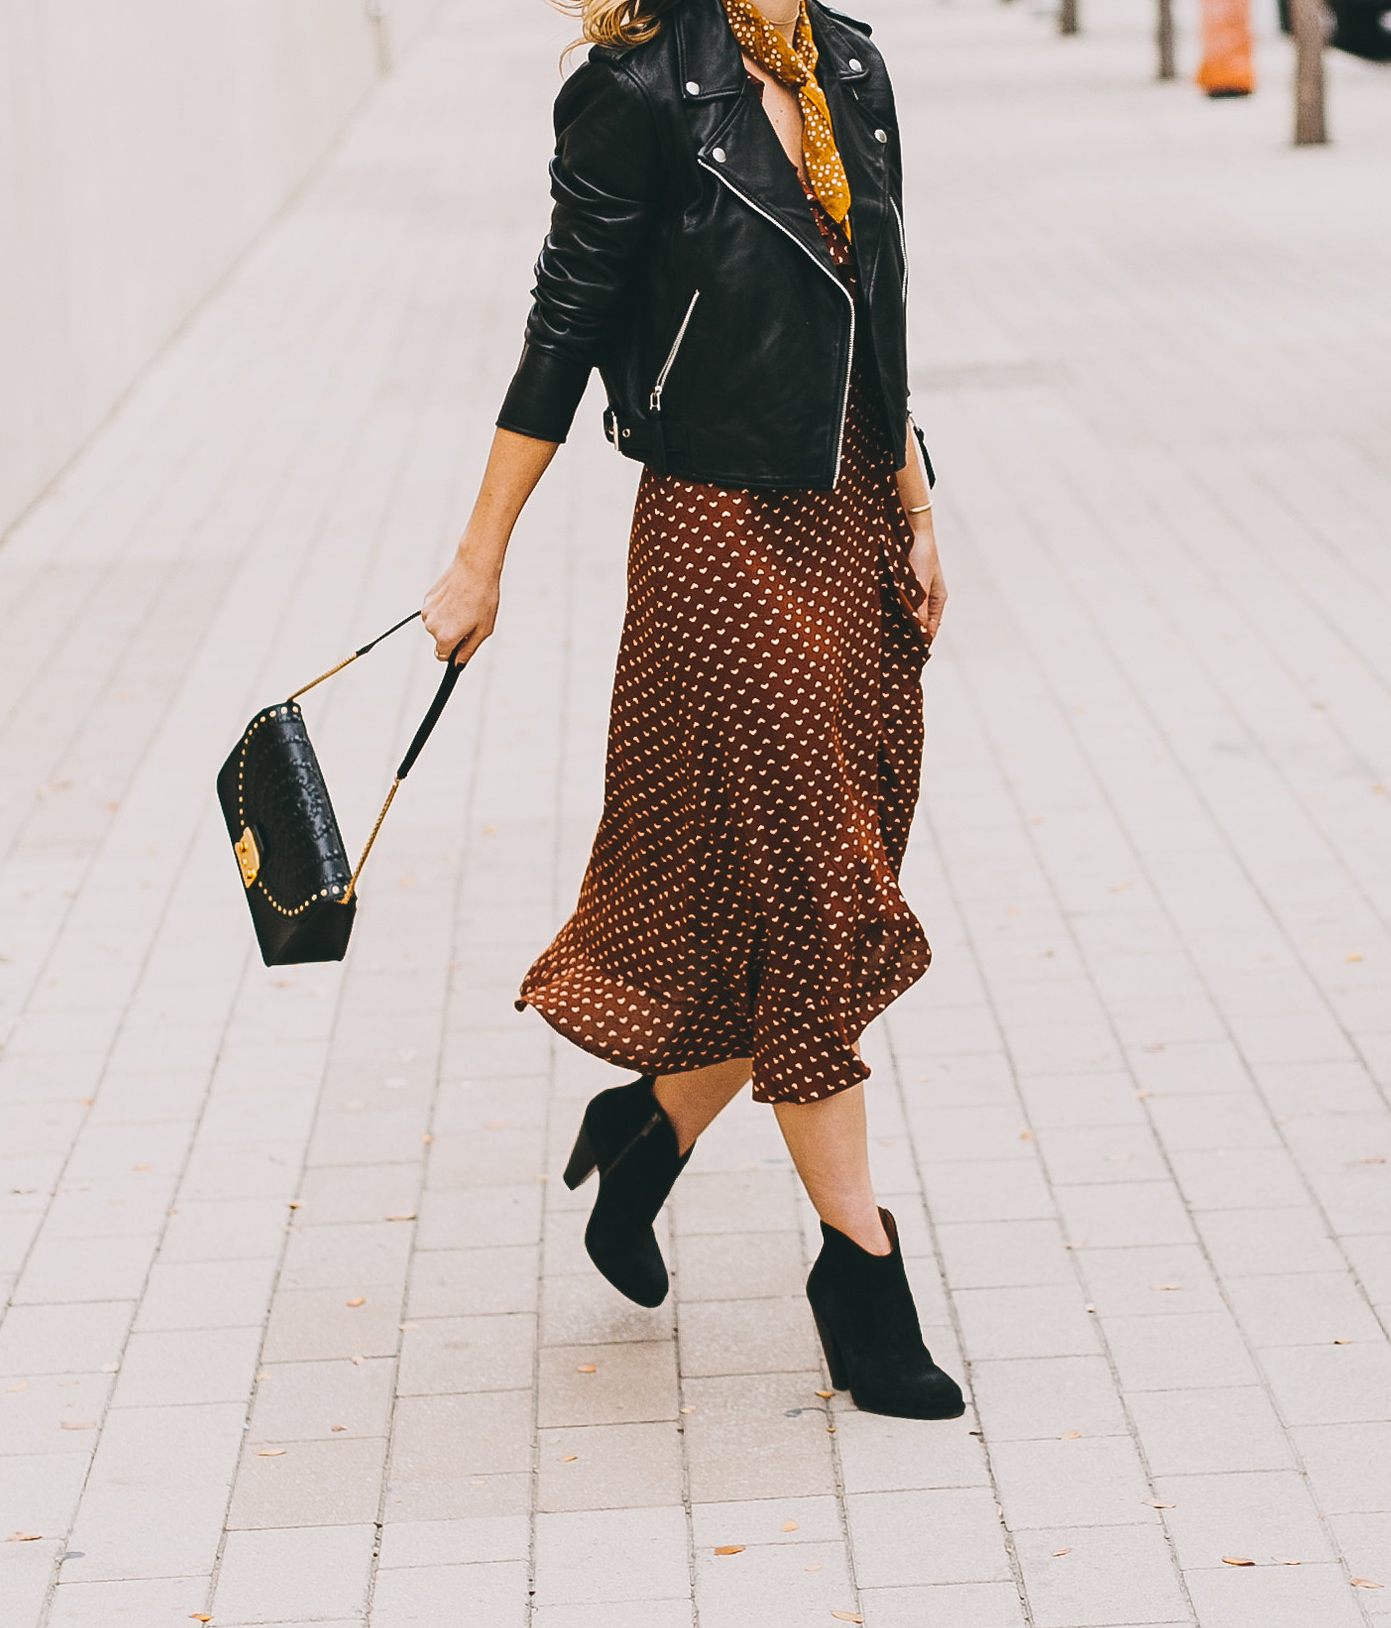 livvyland-blog-olivia-watson-austin-texas-fashion-blogger-urban-outfitters-wrap-dress-sezane-leather-jacket-fall-outfit-idea-12